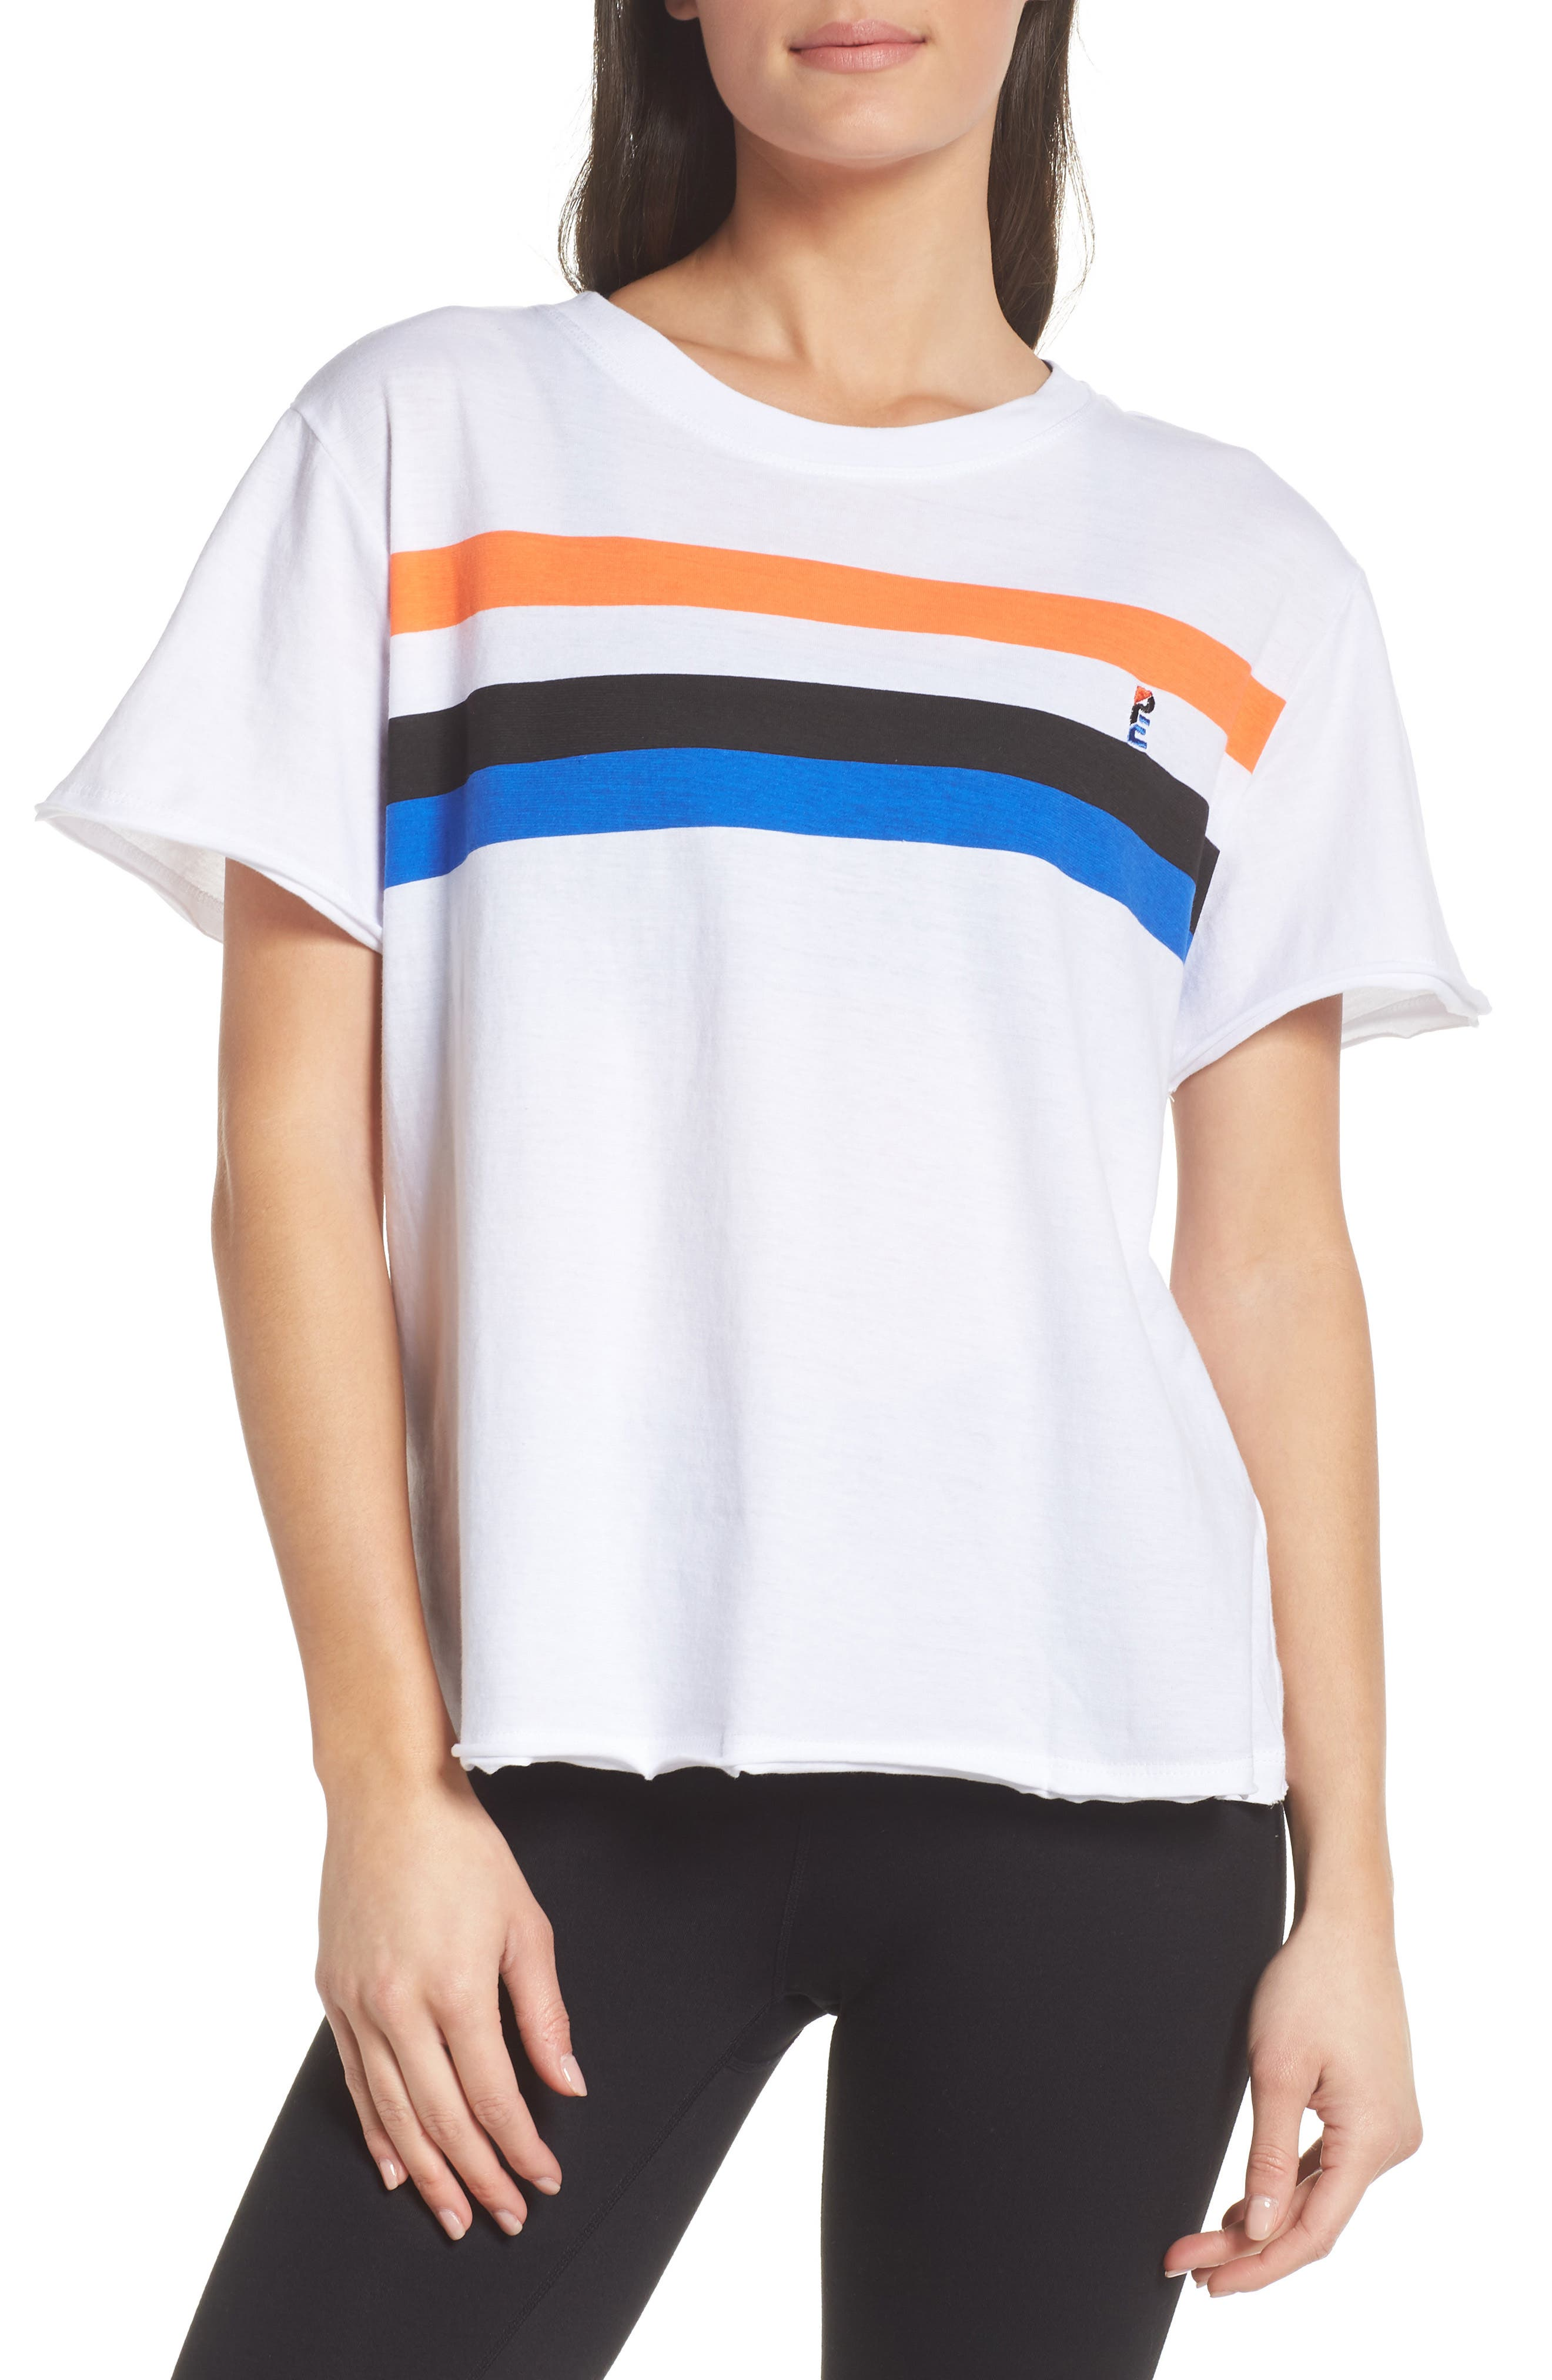 P.E Nation Middle Distance Tee